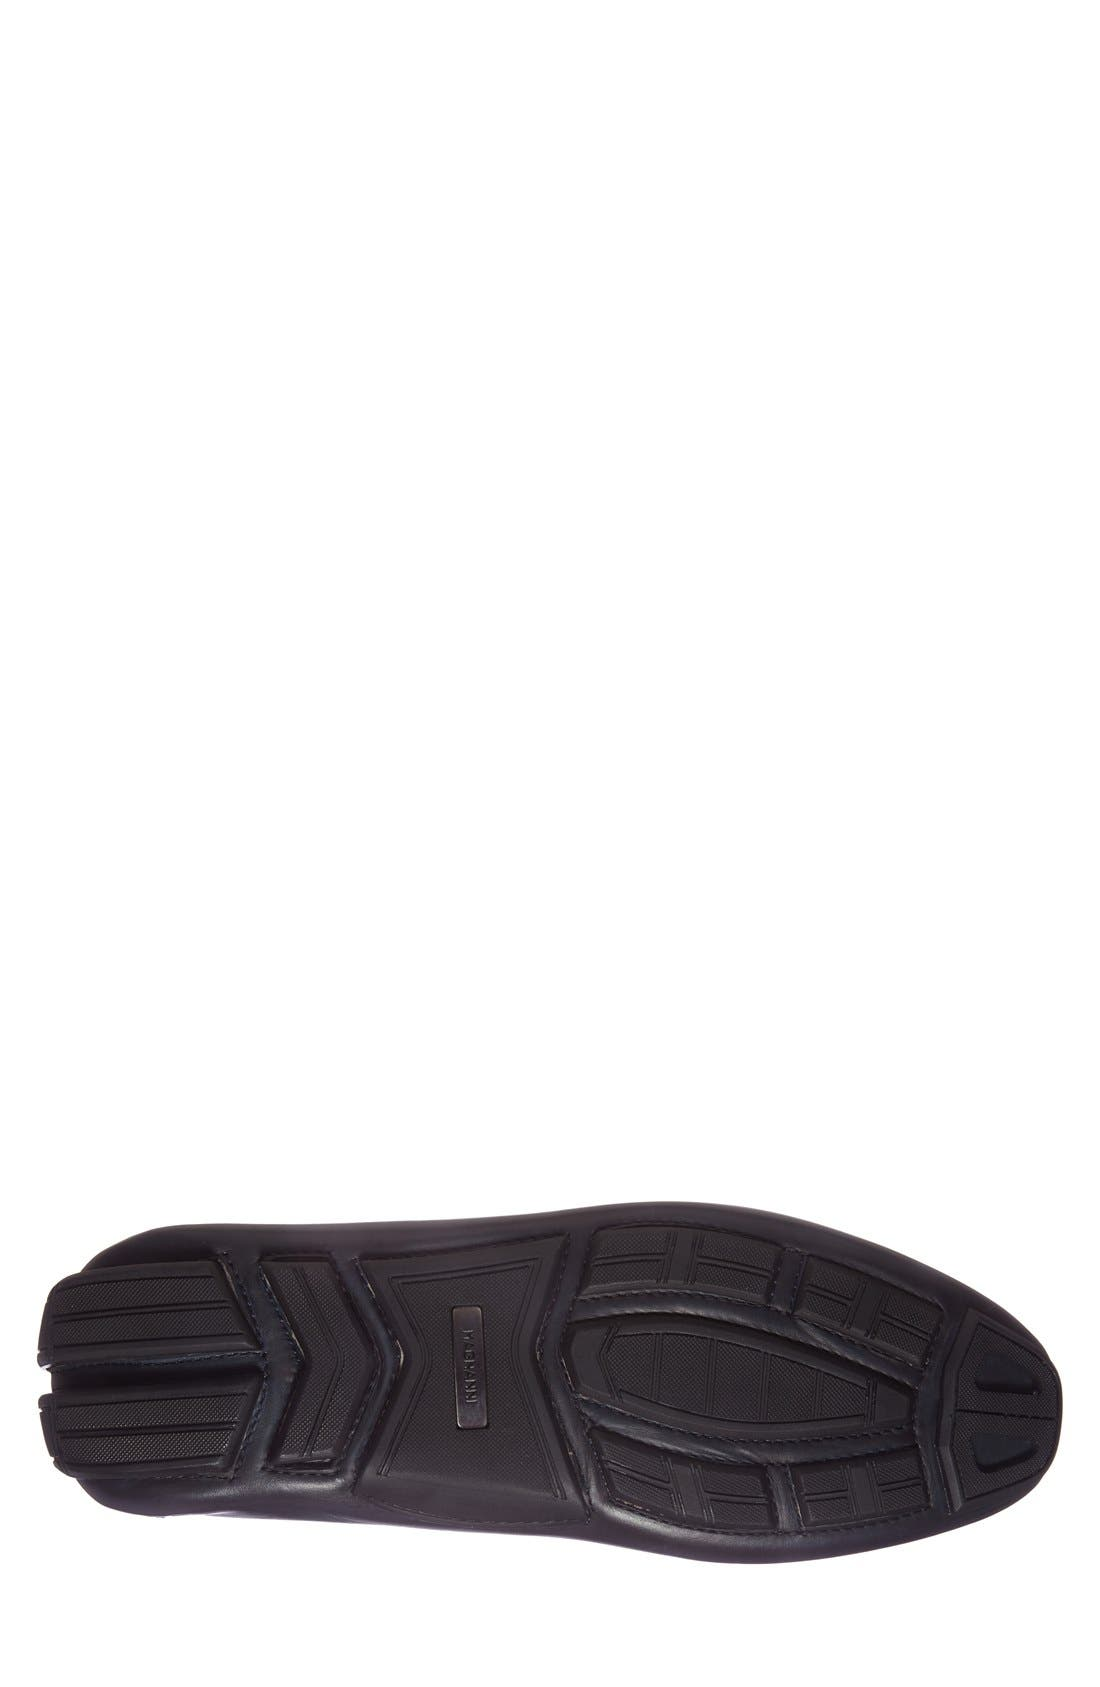 'Dylan' Leather Driving Shoe,                             Alternate thumbnail 19, color,